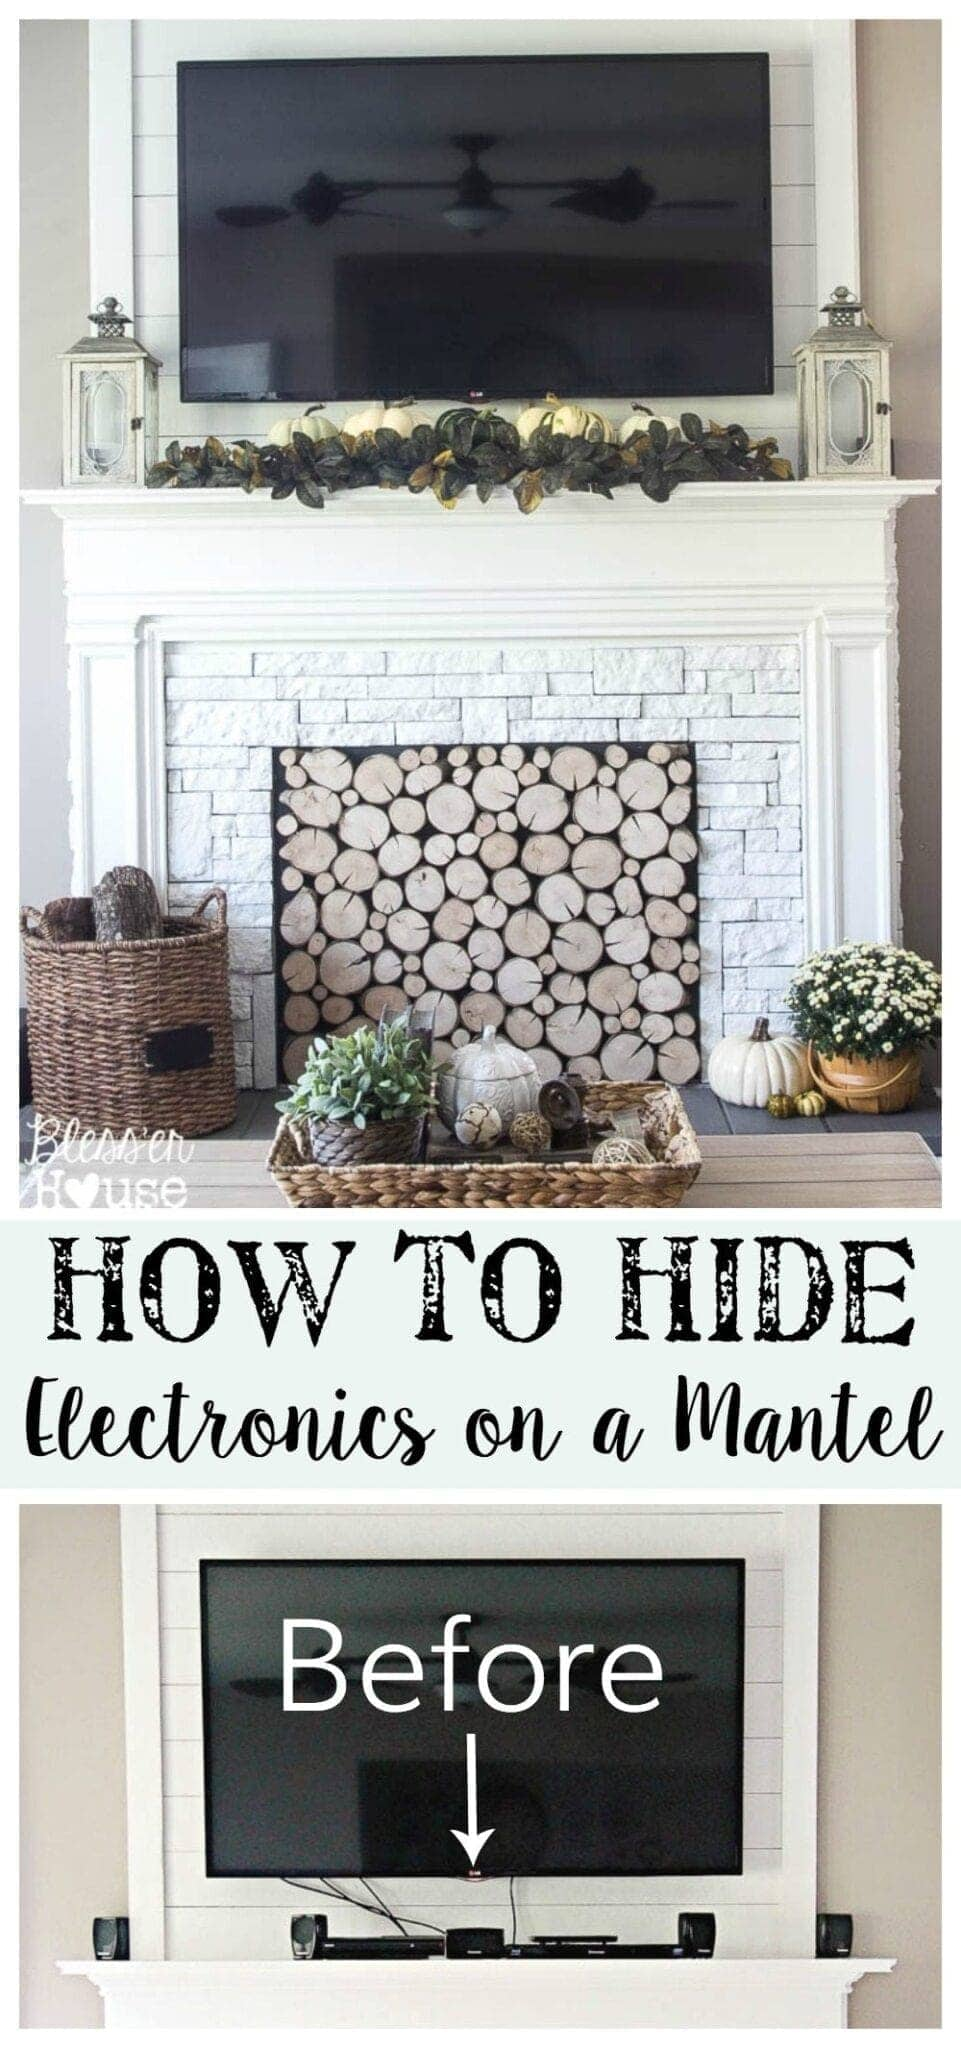 How to Hide Electronics on a Mantel